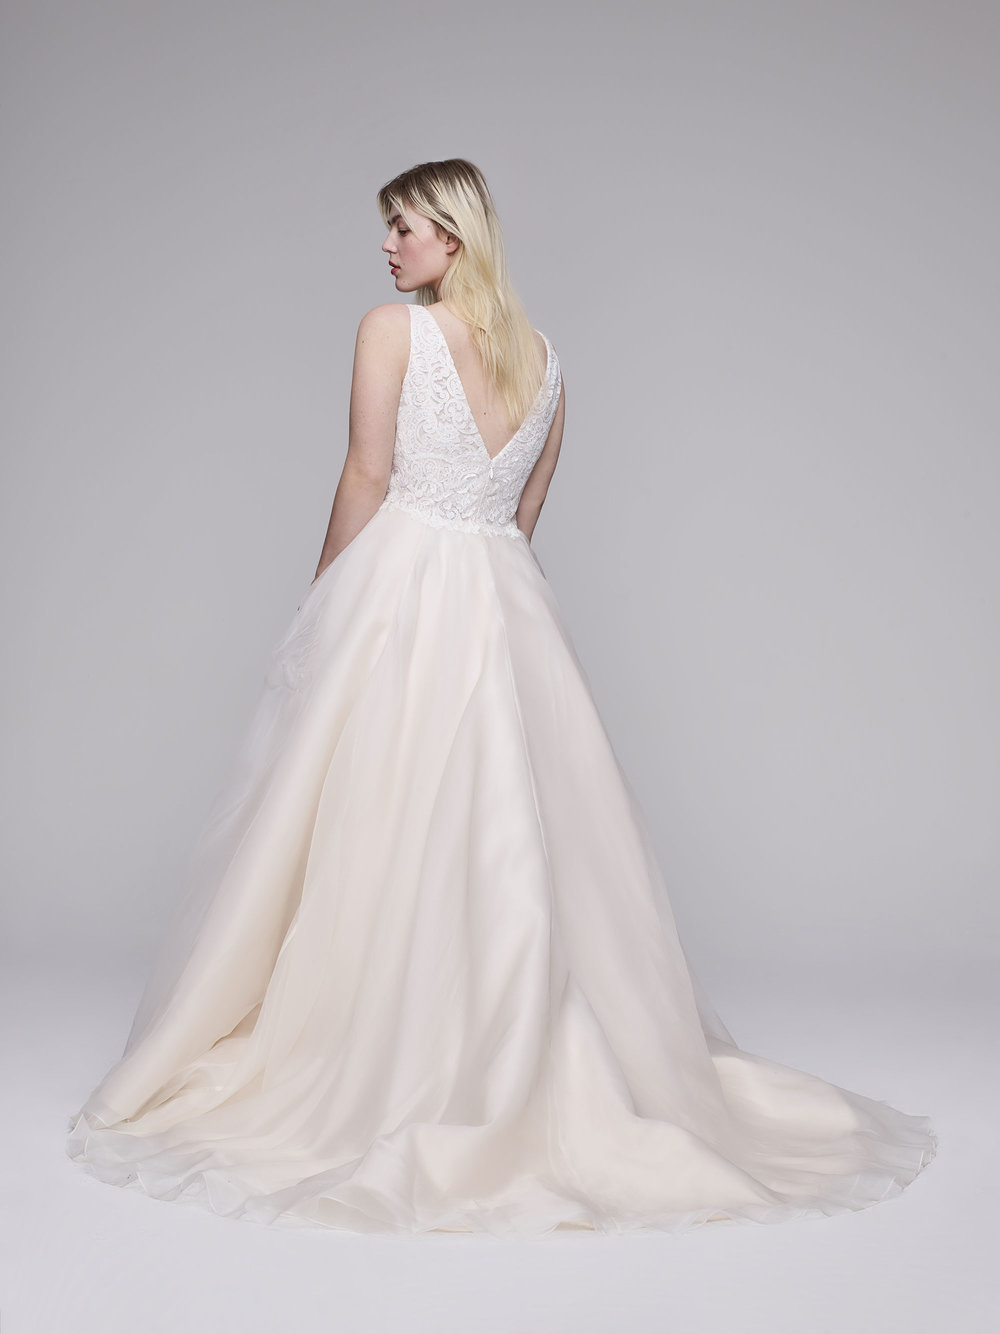 The Fowler plus size wedding gown from Curve Couture by Anne Barge